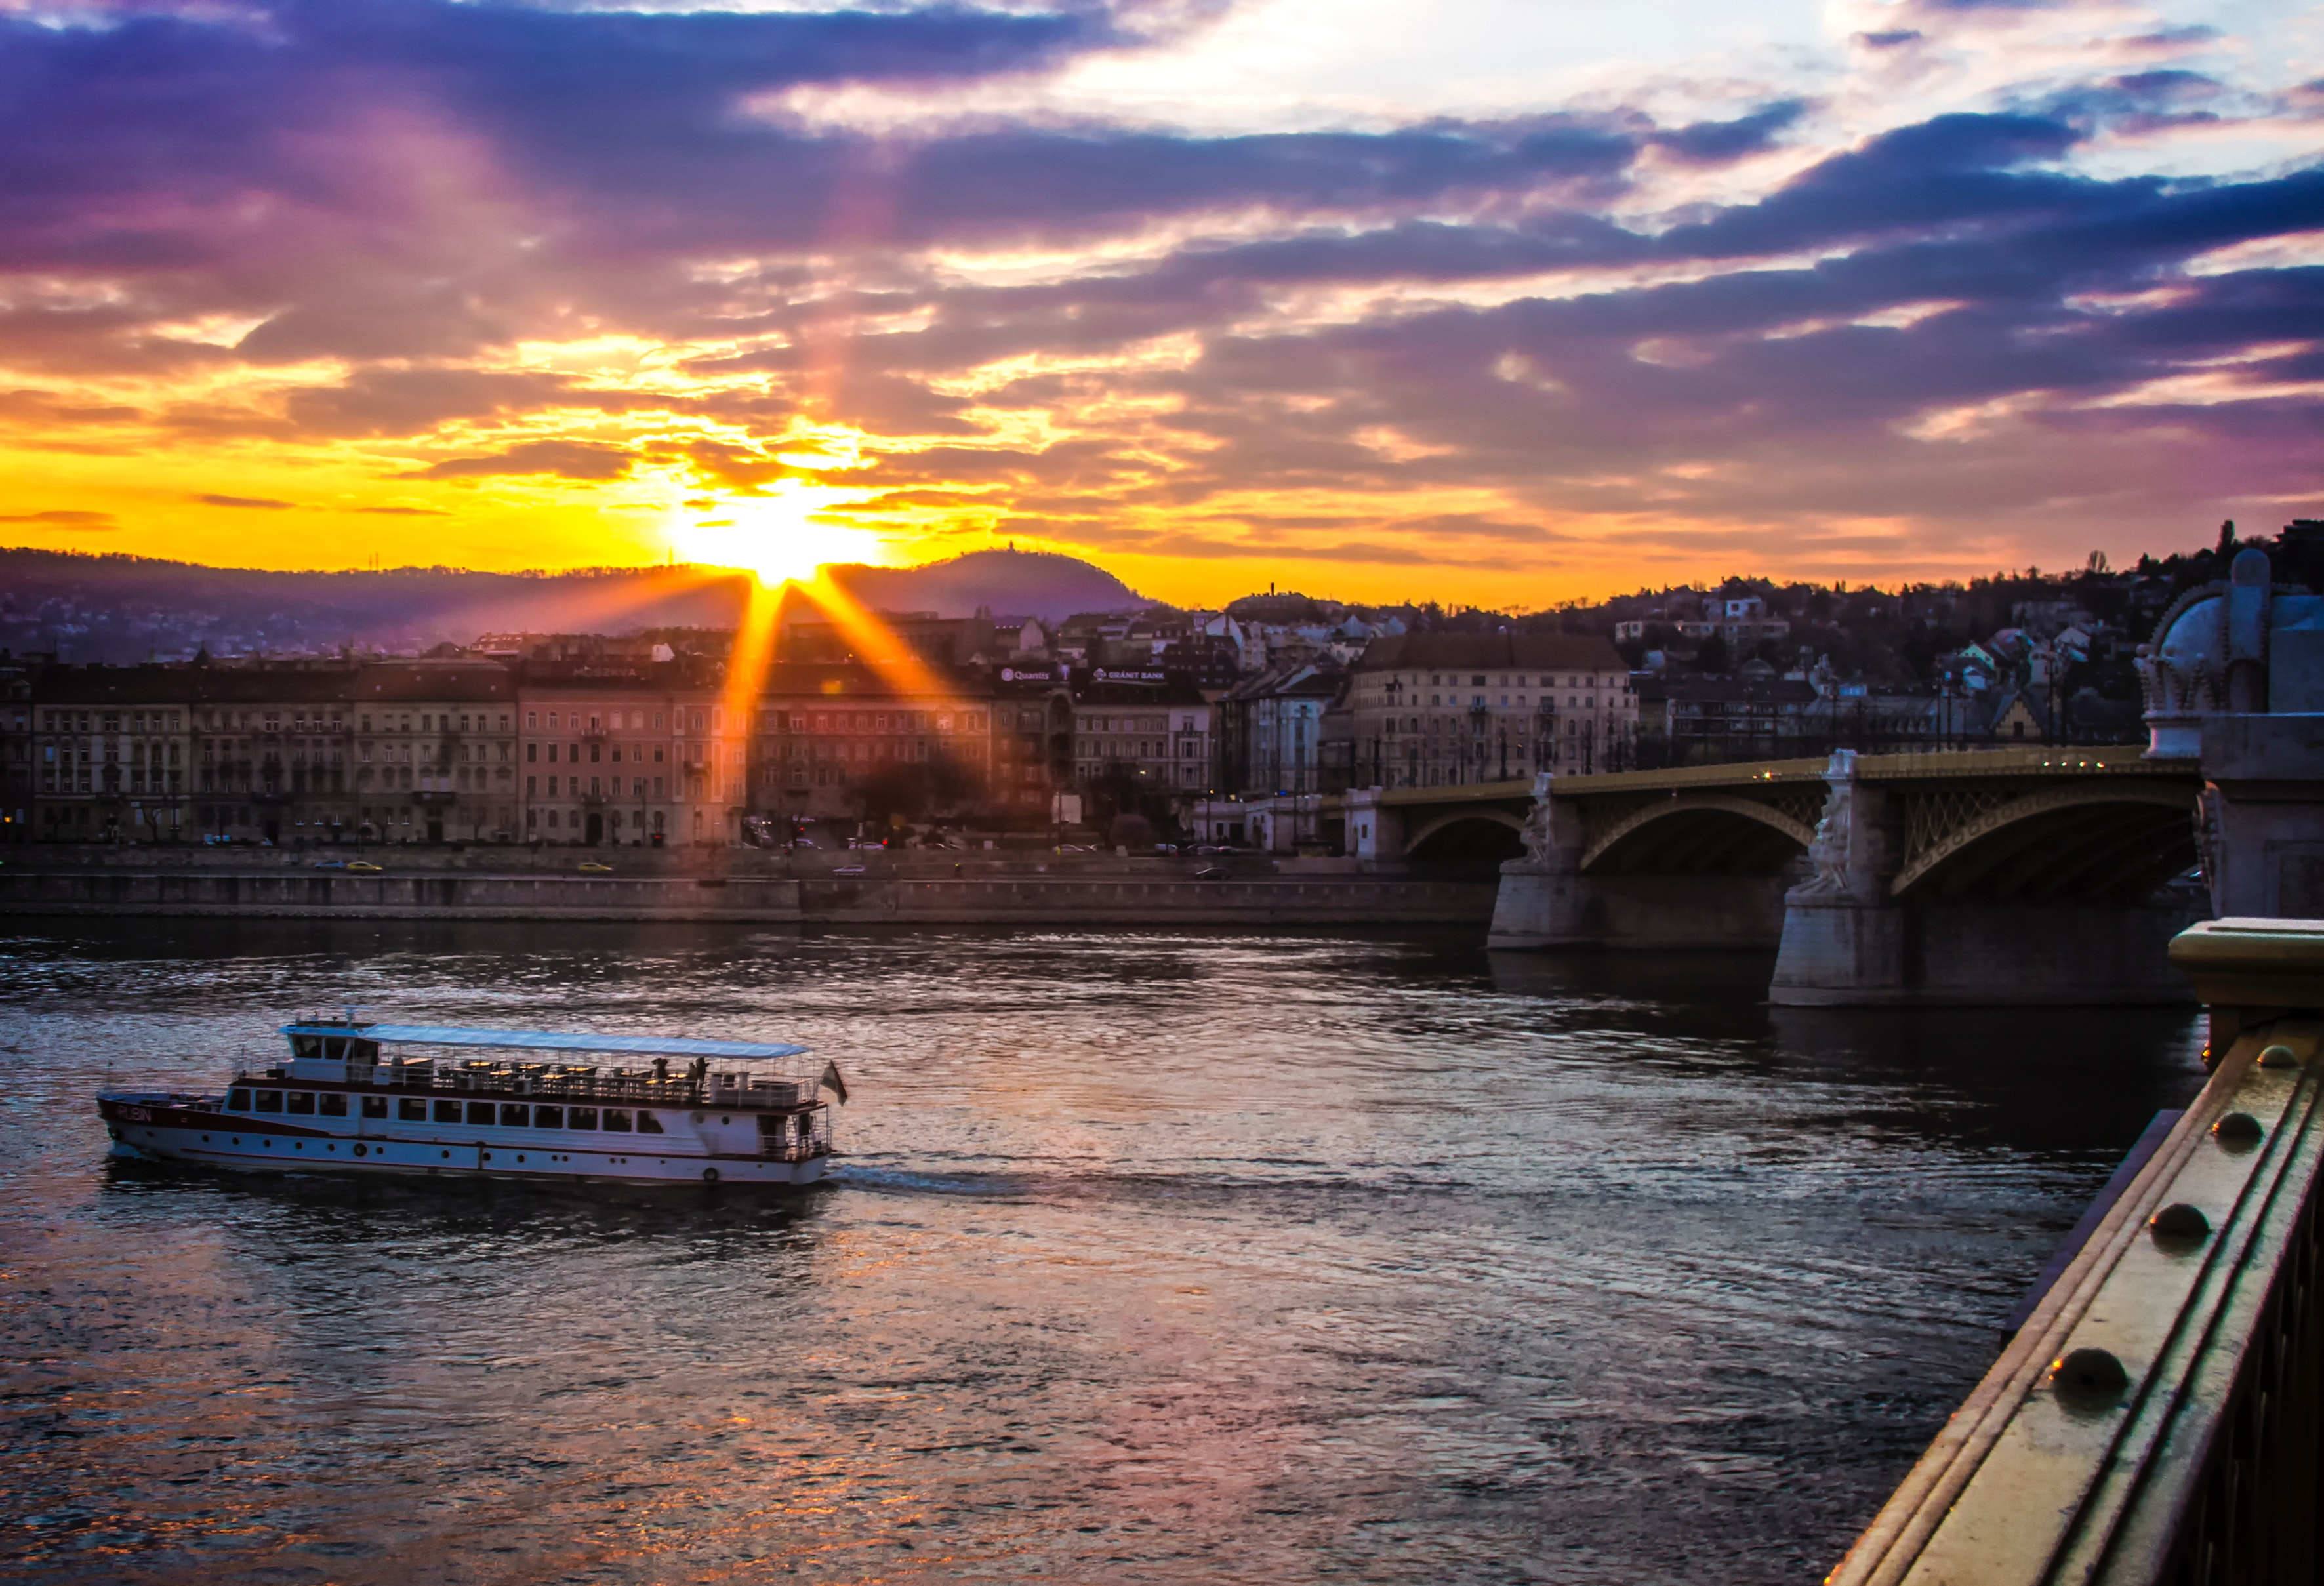 White Boat on Body of Water during Daytime, Bridge, Budapest, City, Cityscape, HQ Photo